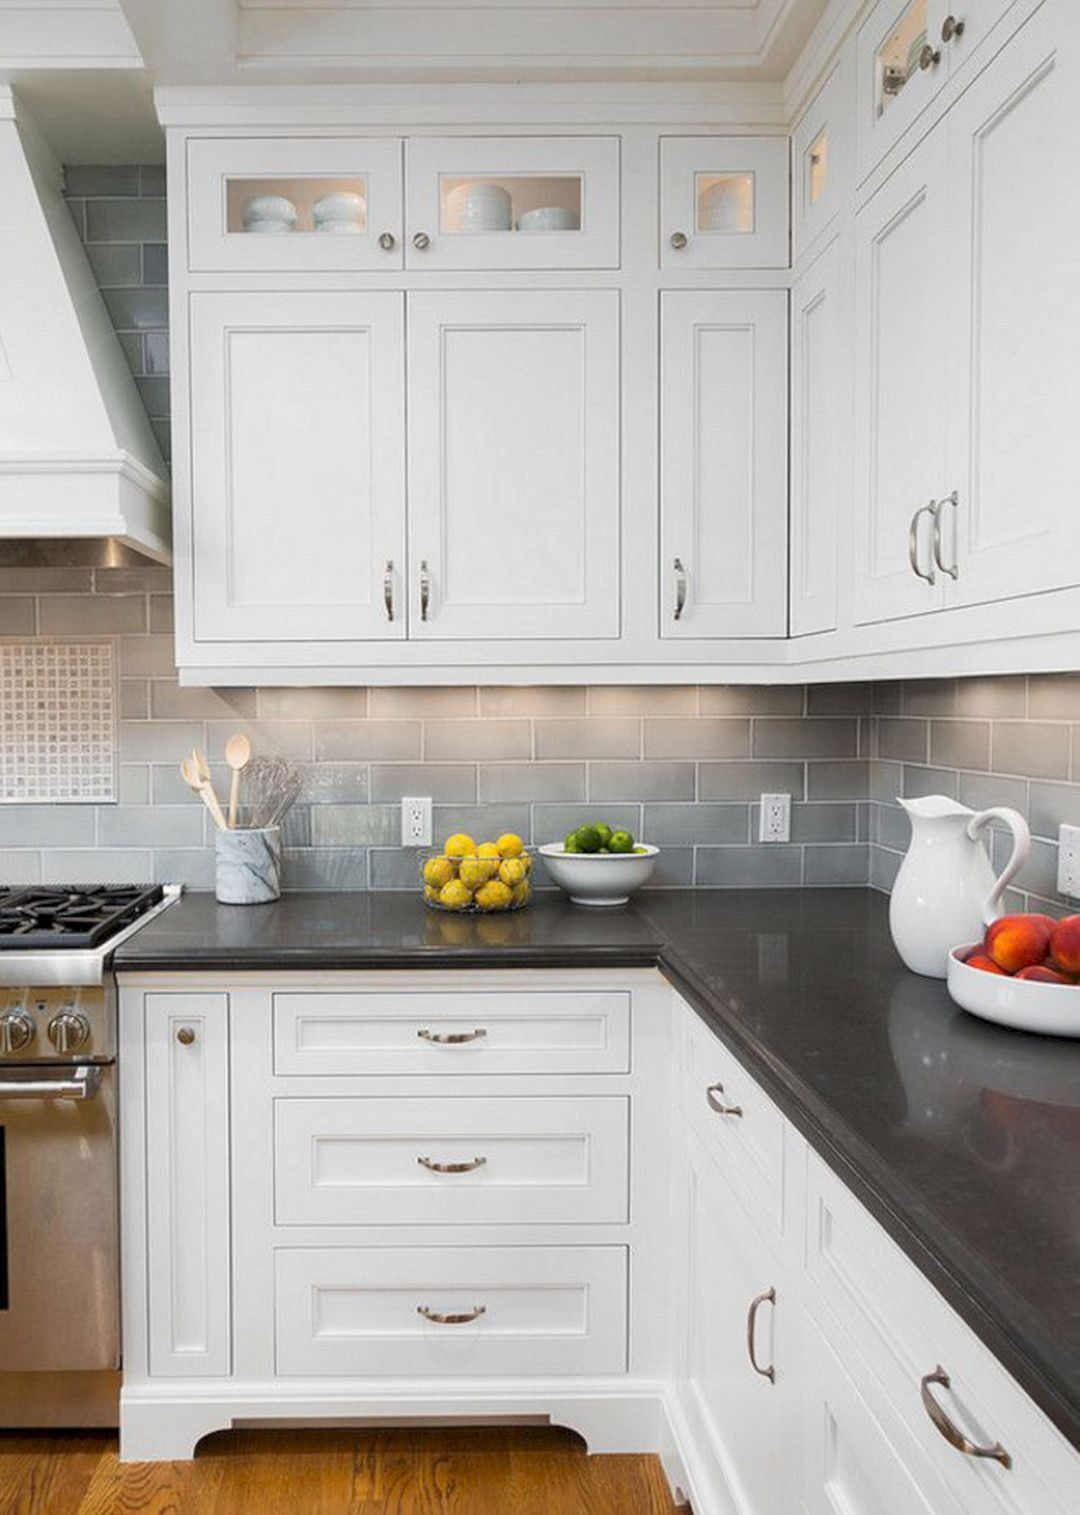 30+ Best Traditional Kitchen Design Ideas for You Who Love A Beautiful Kitchen / FresHOUZ.com #traditionalkitchen